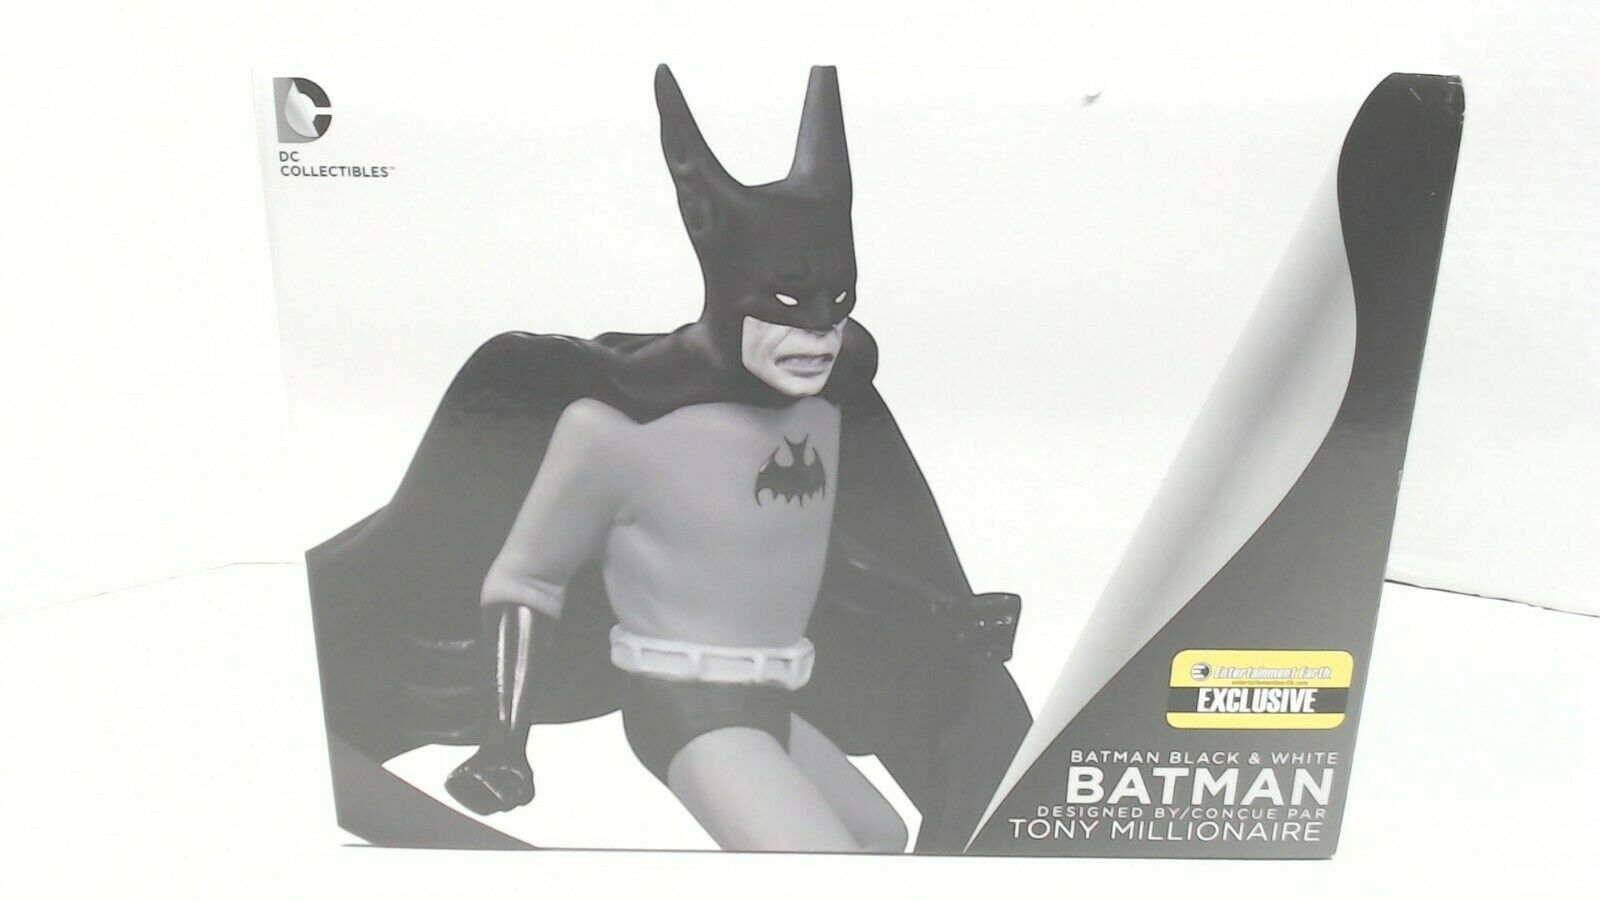 Batman Black and White by Tony Millionaire Statue as seen Bizarro NIB $69